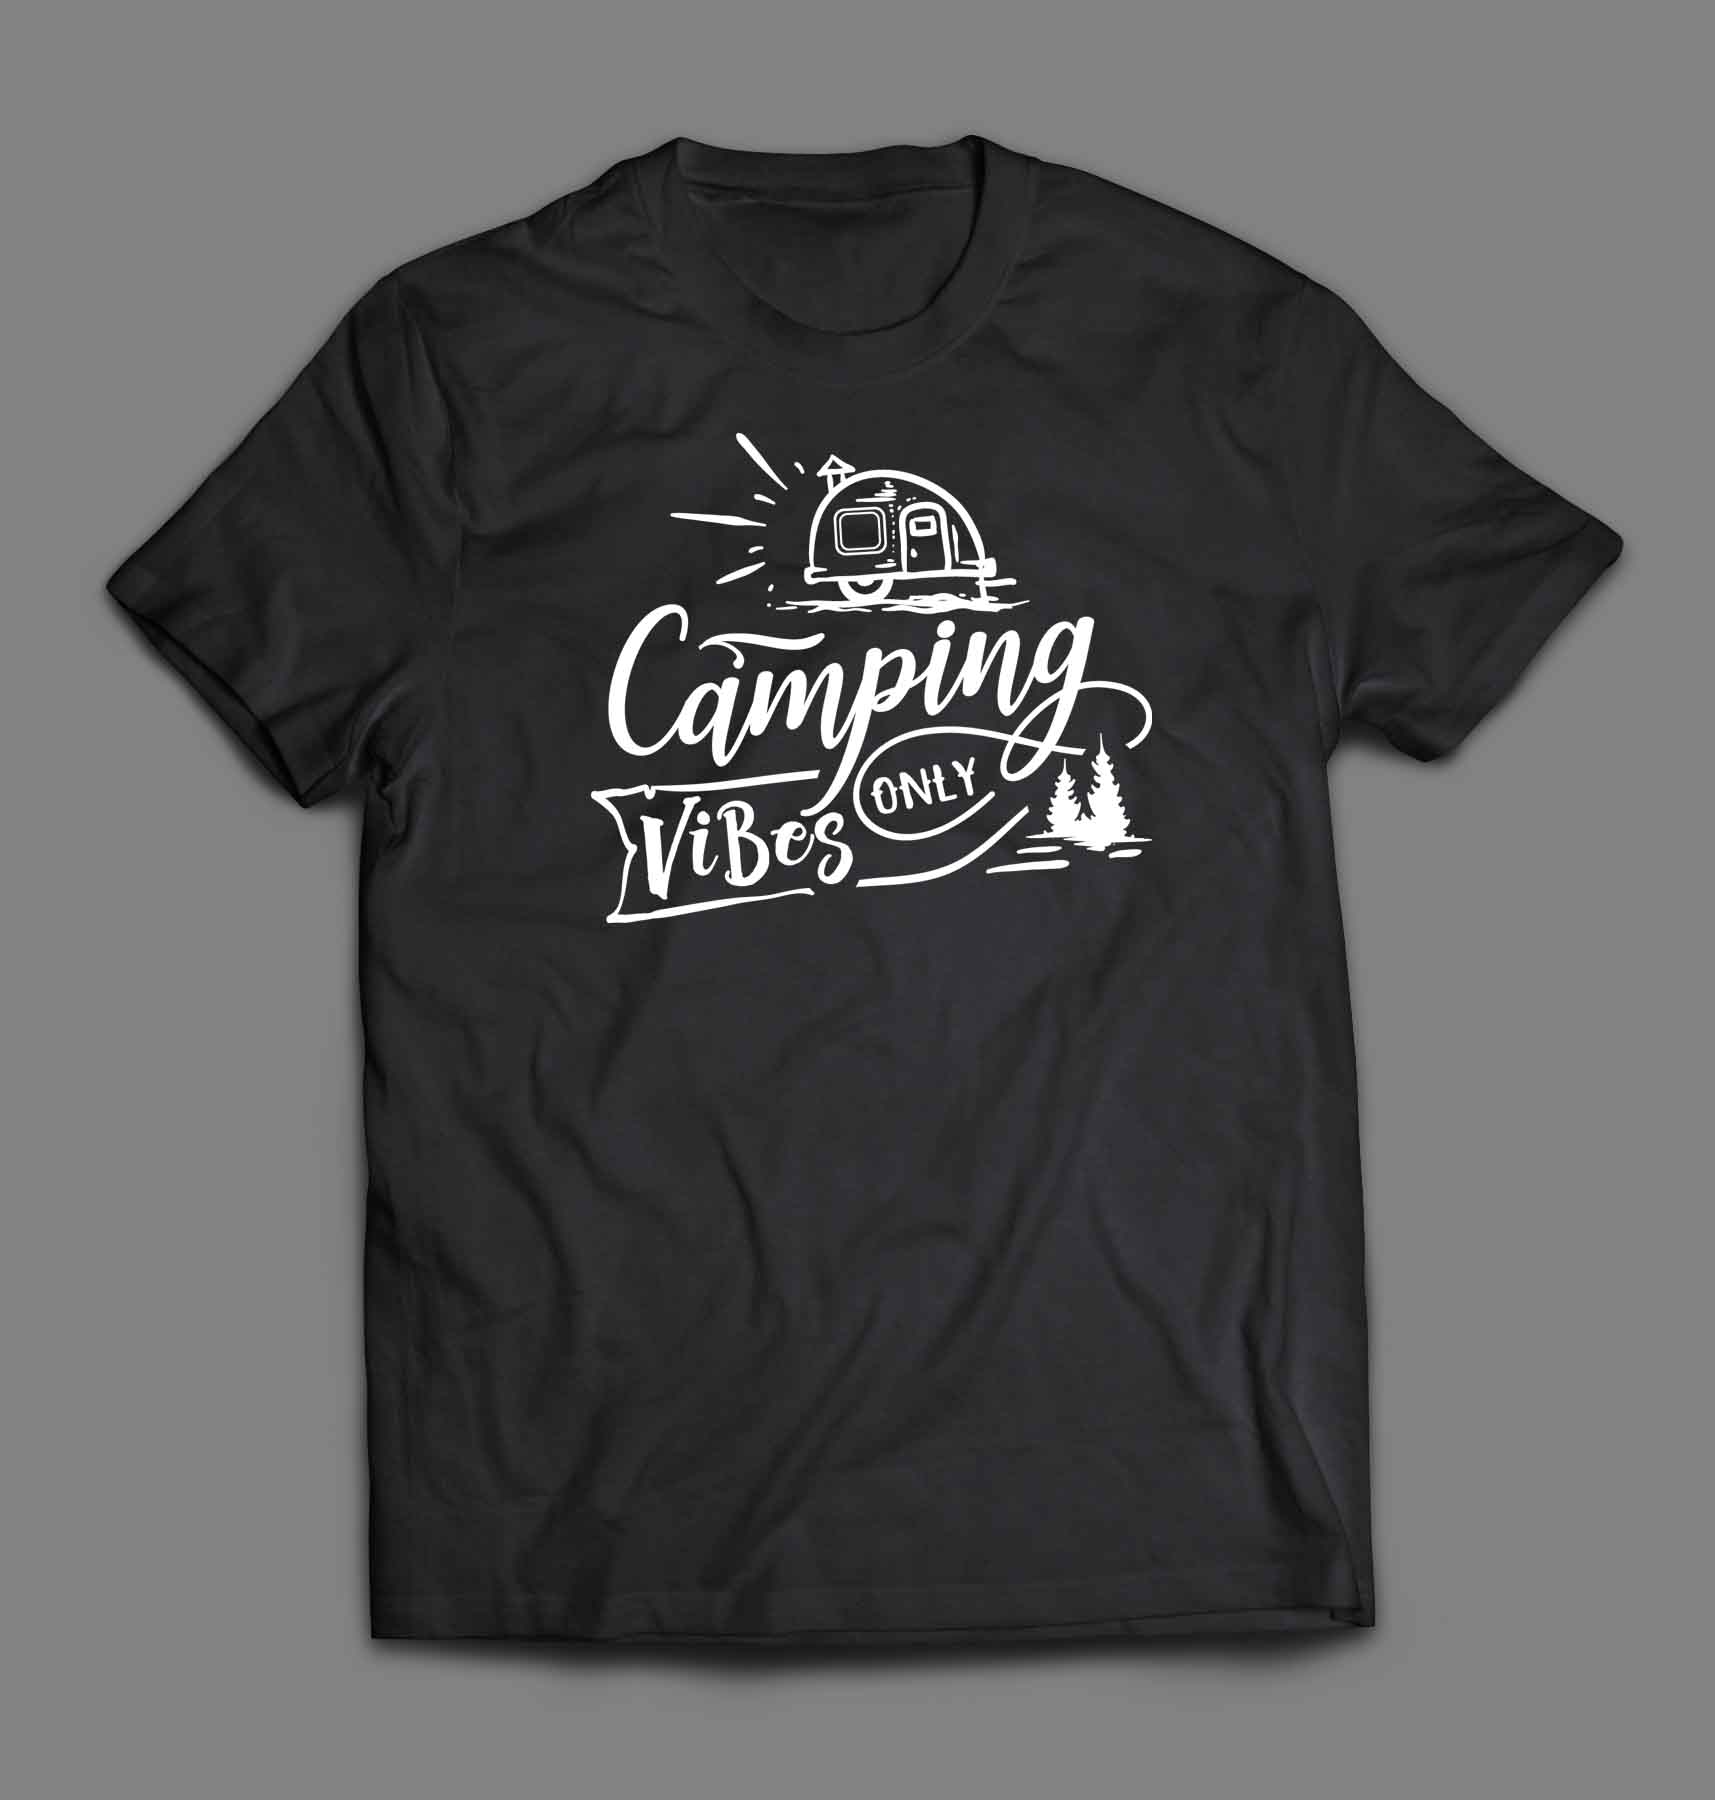 Camping vibes only T-shirt